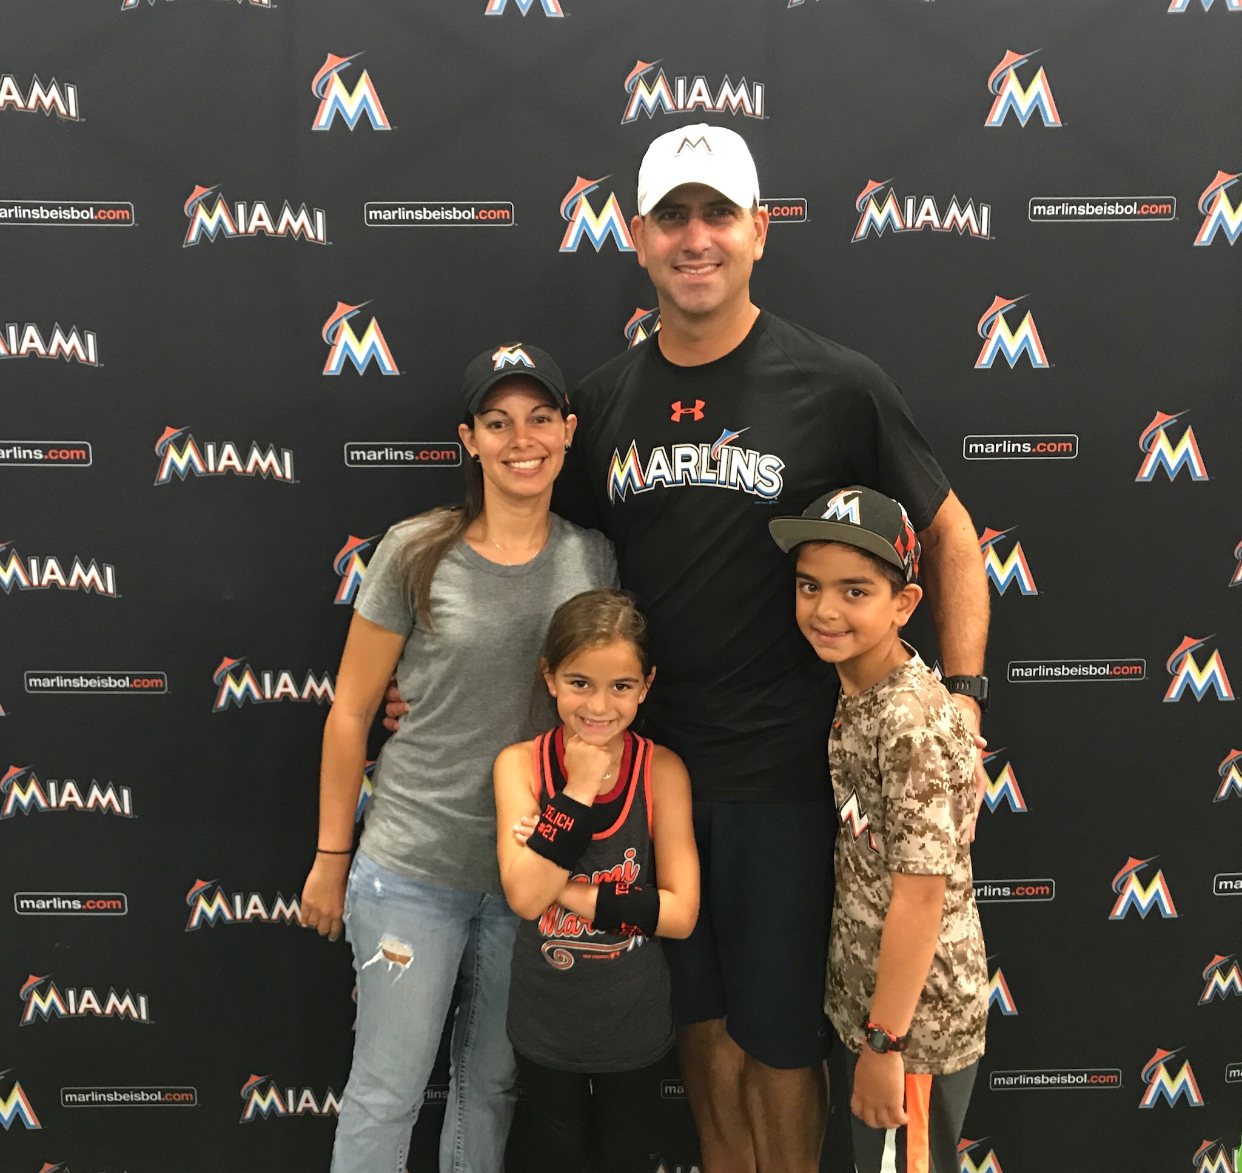 Marlins Family